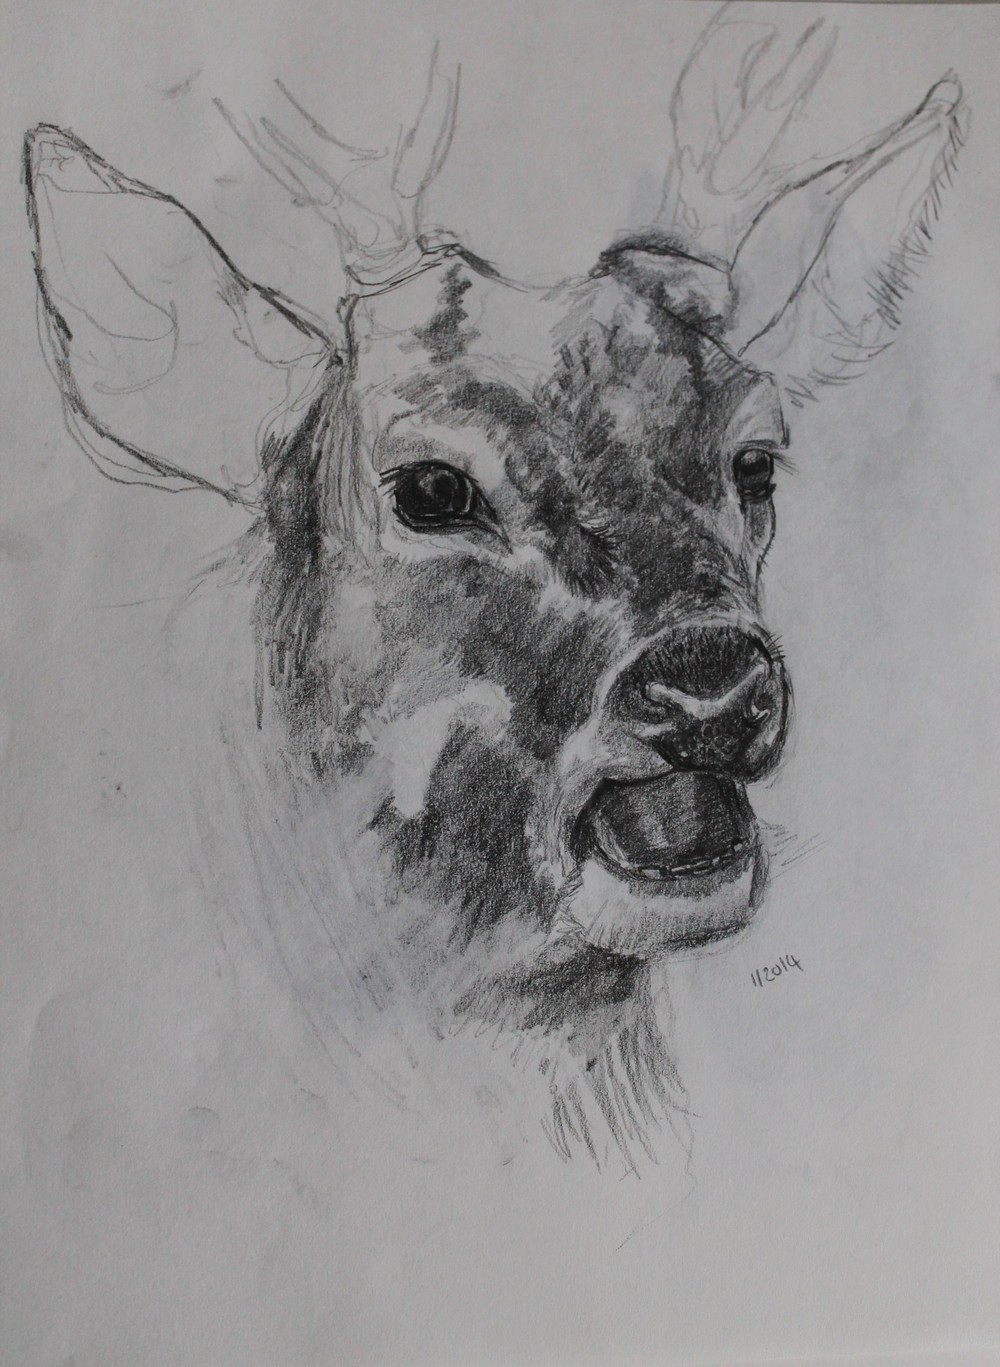 2014, 4B pencil drawing of a stag, just over an hour to finish